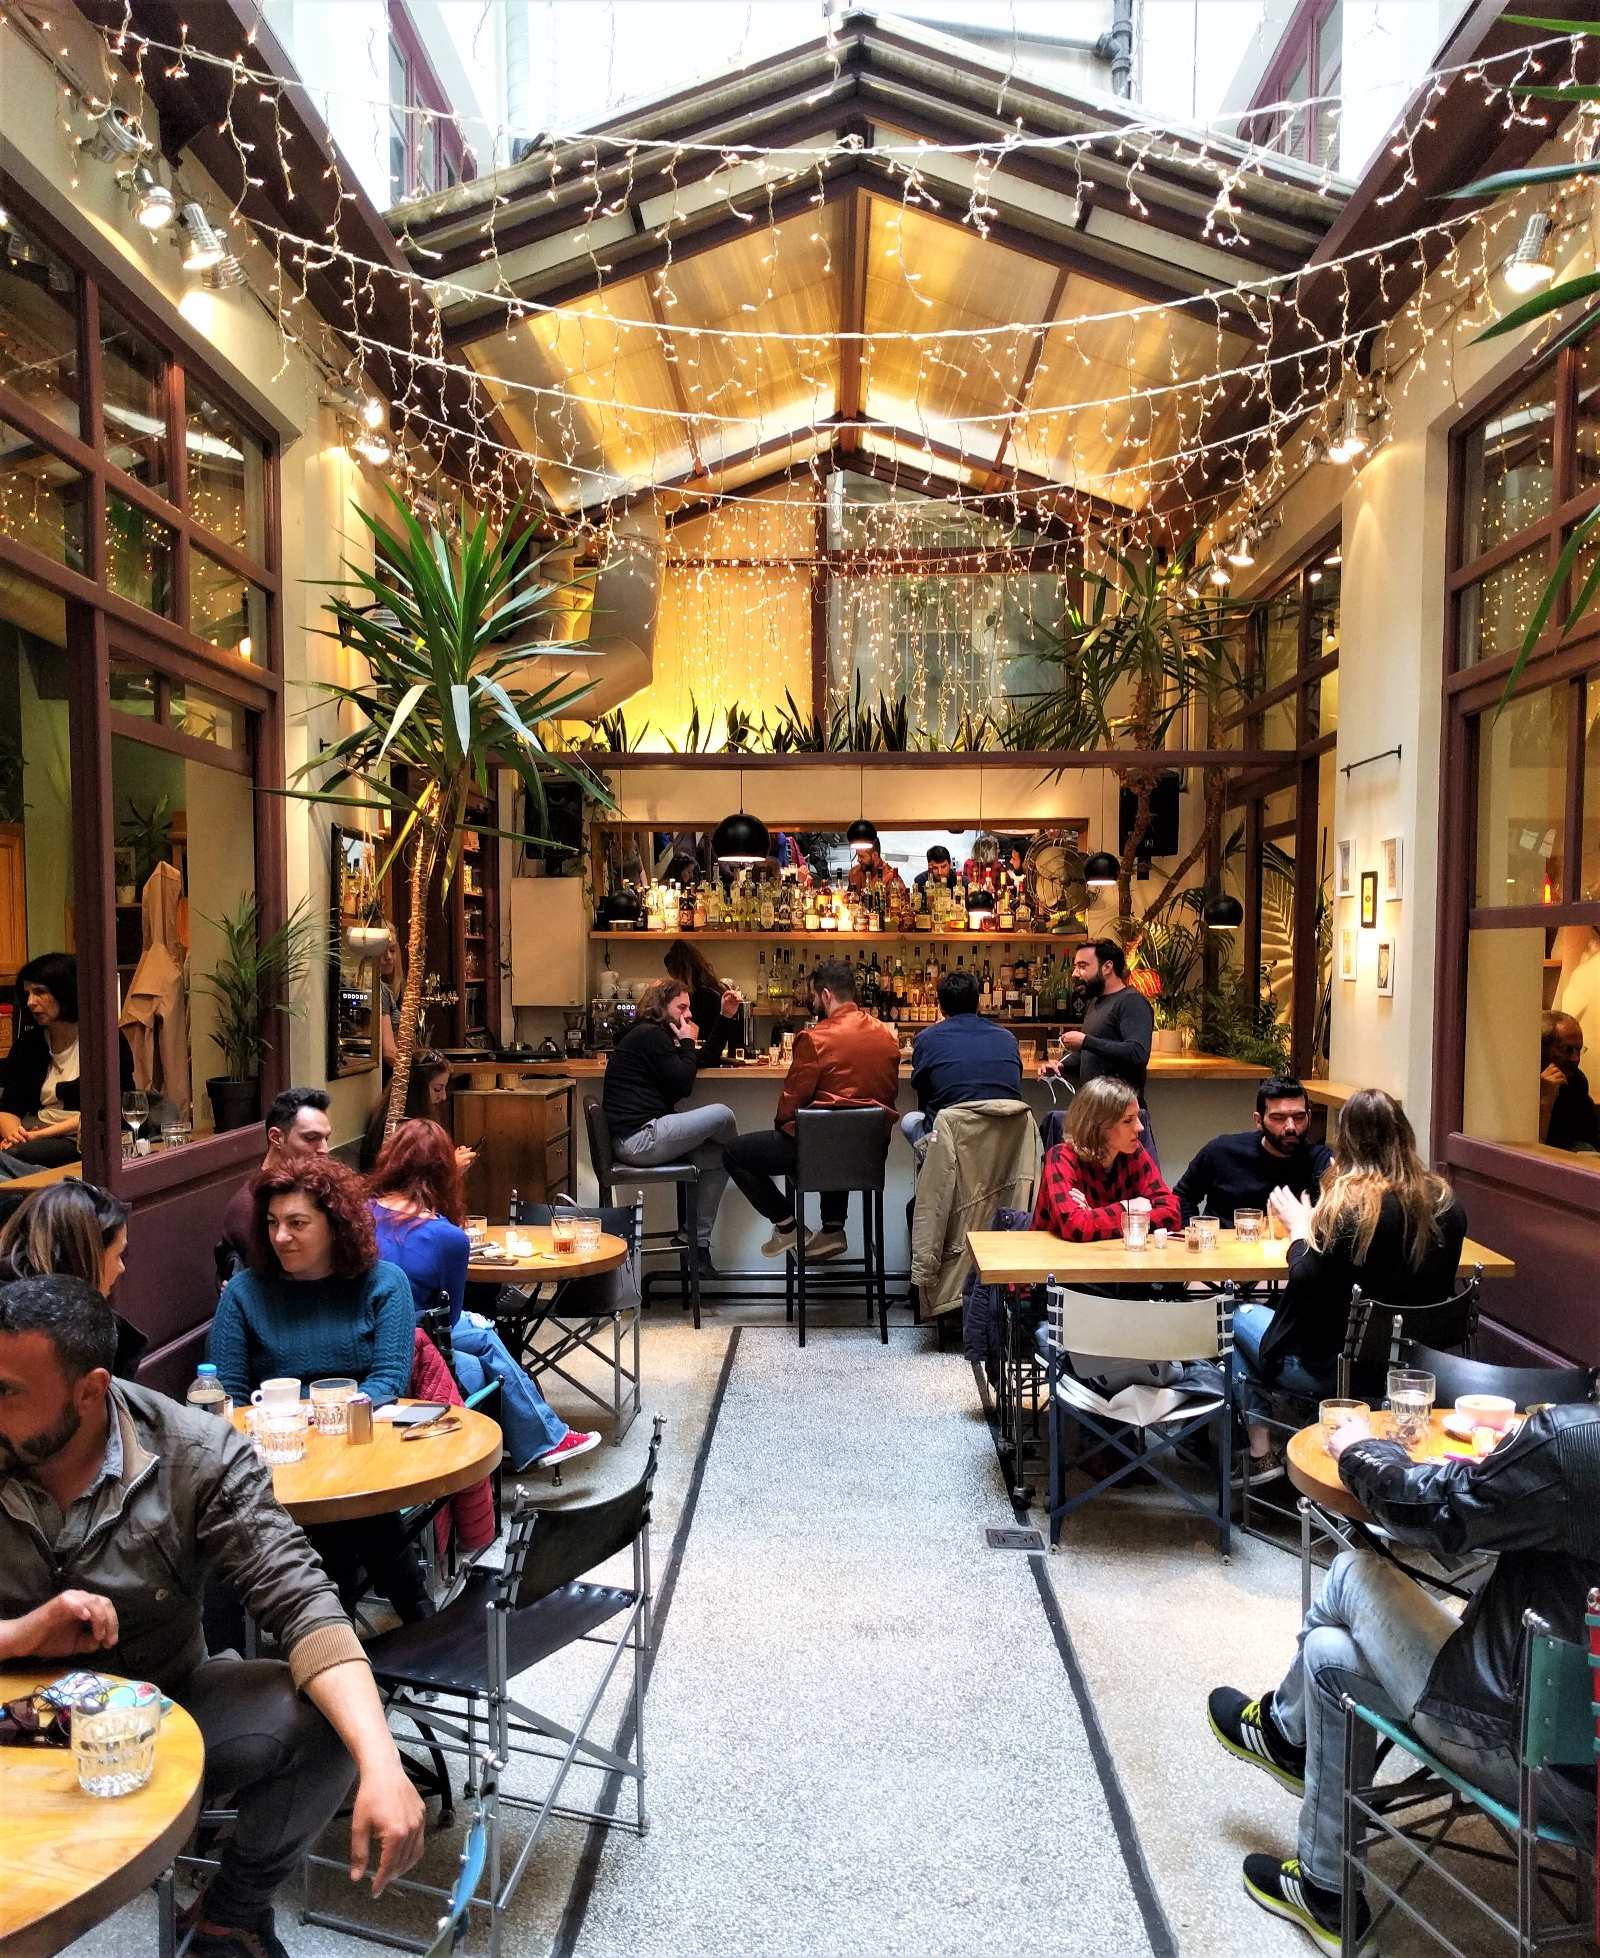 A chilled night out for drinks in  Bartesera  bar in the center of Athens. Source: Truevoyagers